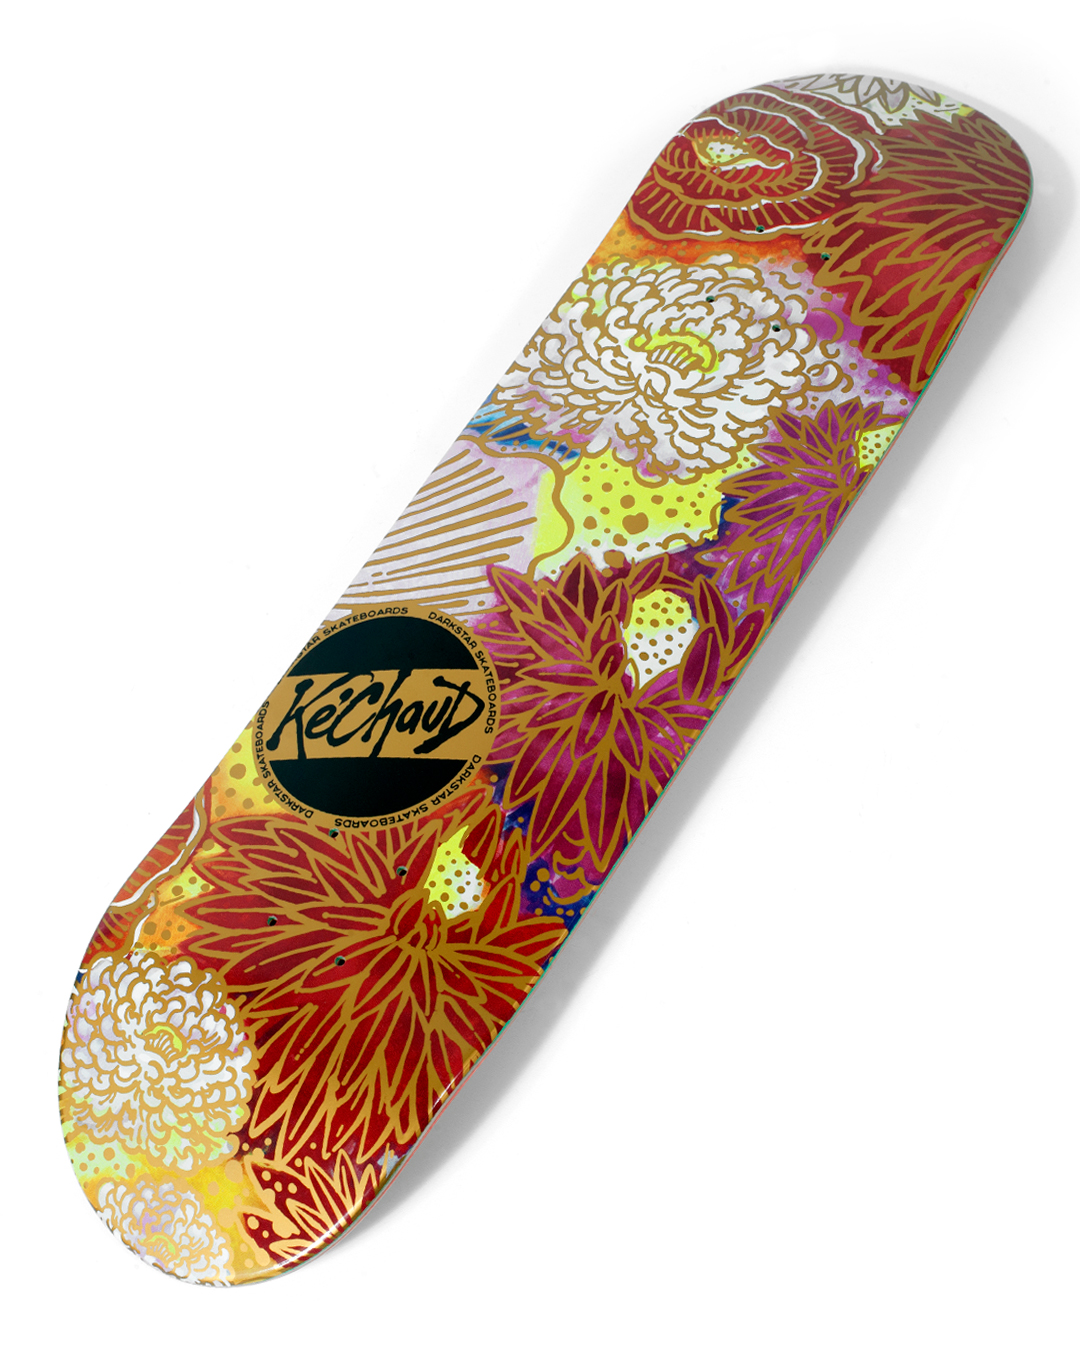 Darkstar Skateboards Summer 2019  Kechaud 2